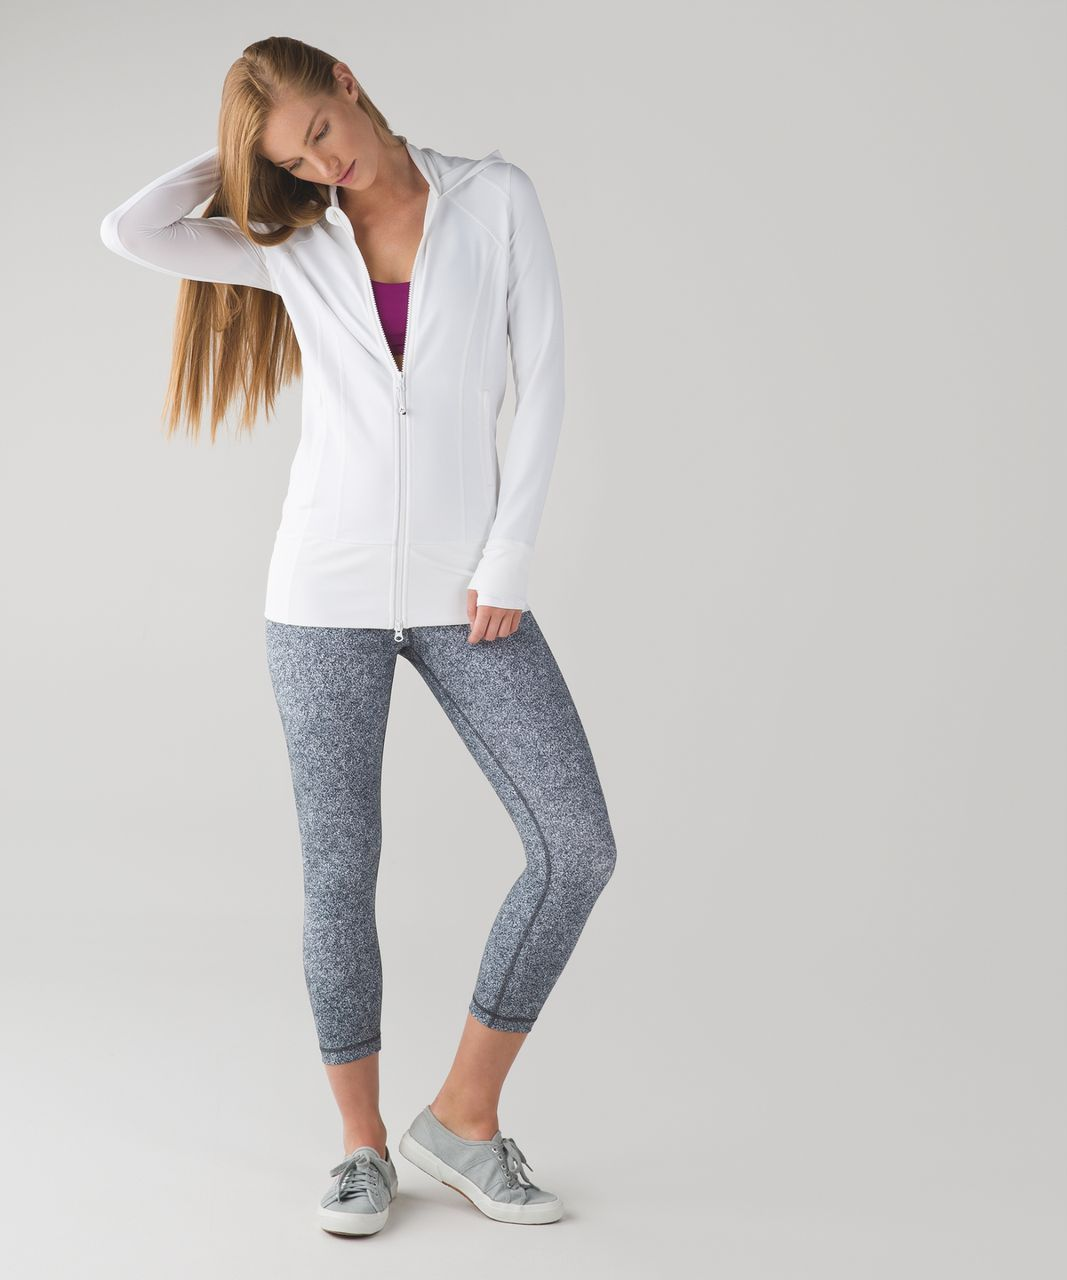 Lululemon Daily Practice Jacket - White